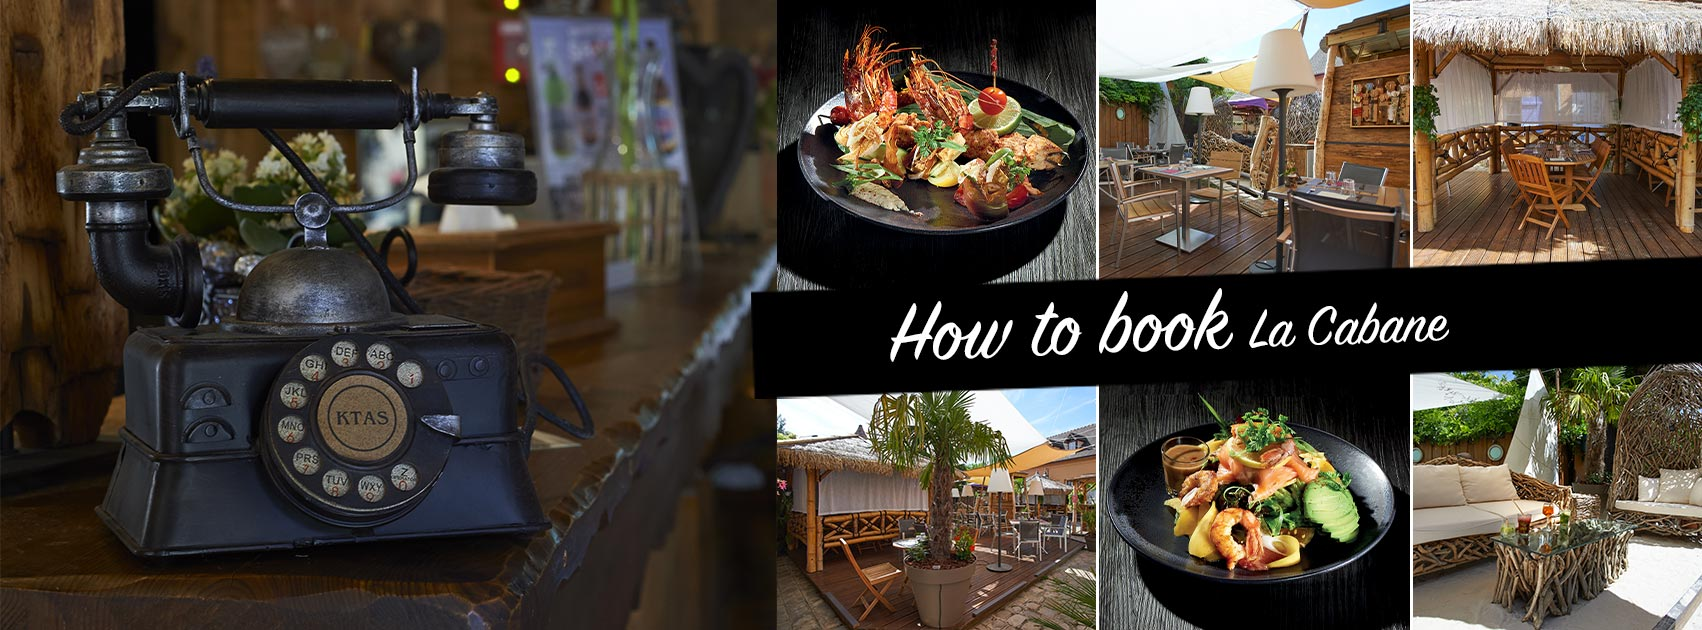 How to book La Cabane